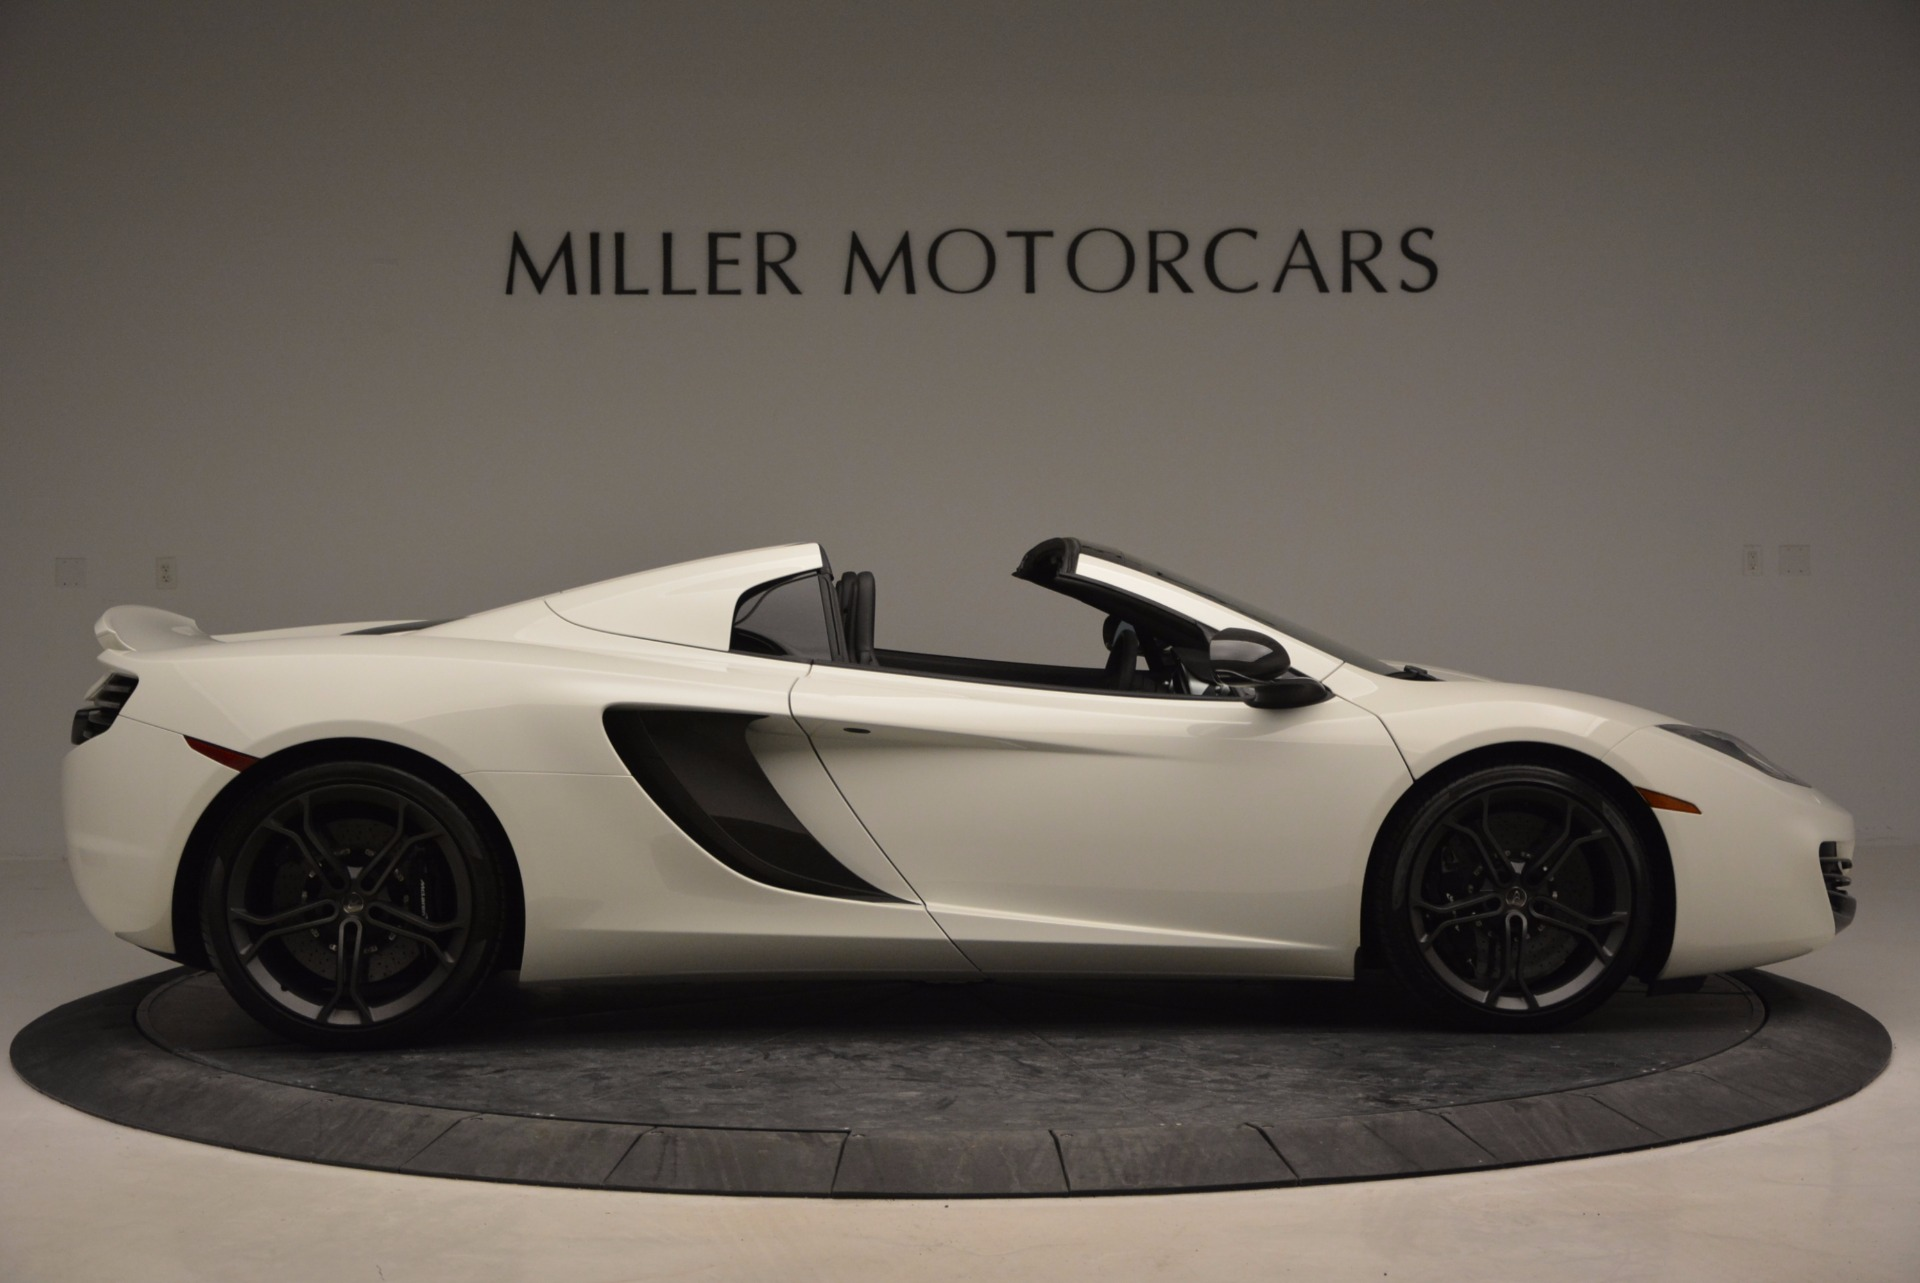 Used 2014 McLaren MP4-12C Spider For Sale In Greenwich, CT. Alfa Romeo of Greenwich, 3136 908_p9